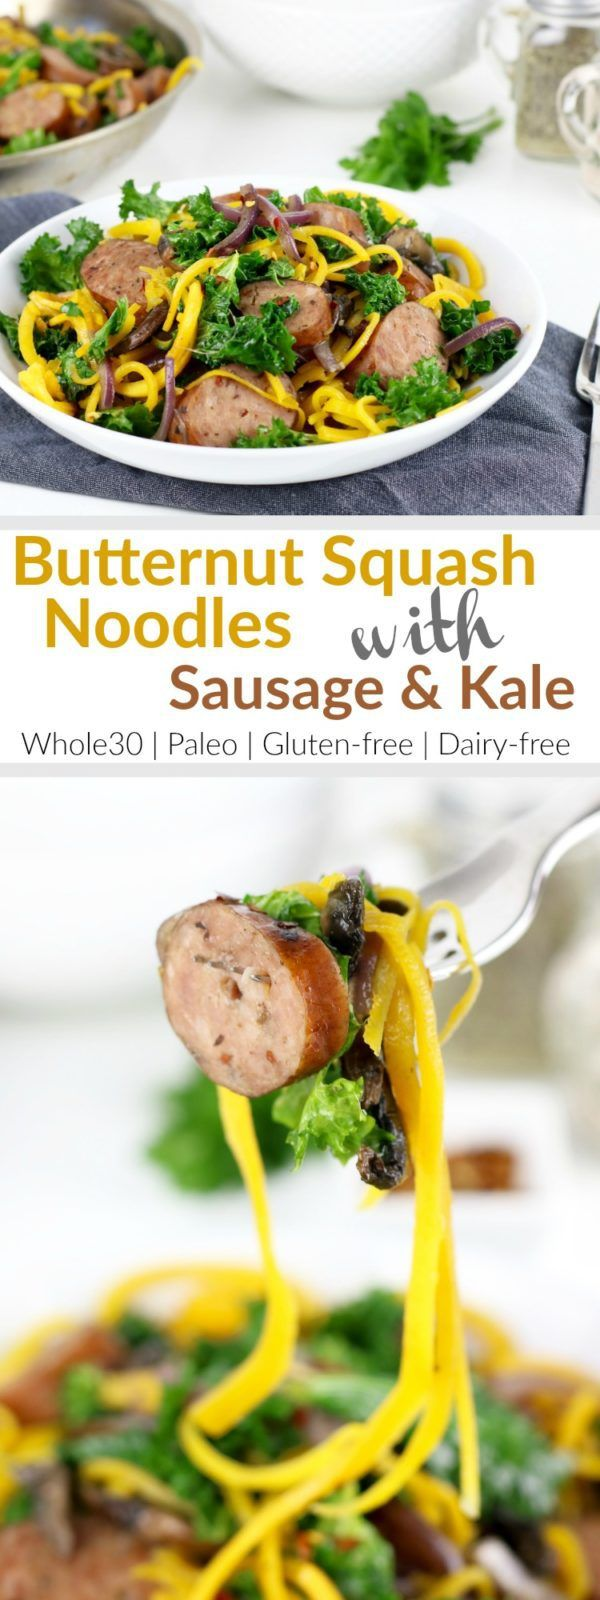 We're about to steal your comfort food-loving heart with these one-dish Butternut Squash Noodles with Sausage and Kale | Whole30 | Paleo | Gluten-free | Grain-free | therealfoodrds.com